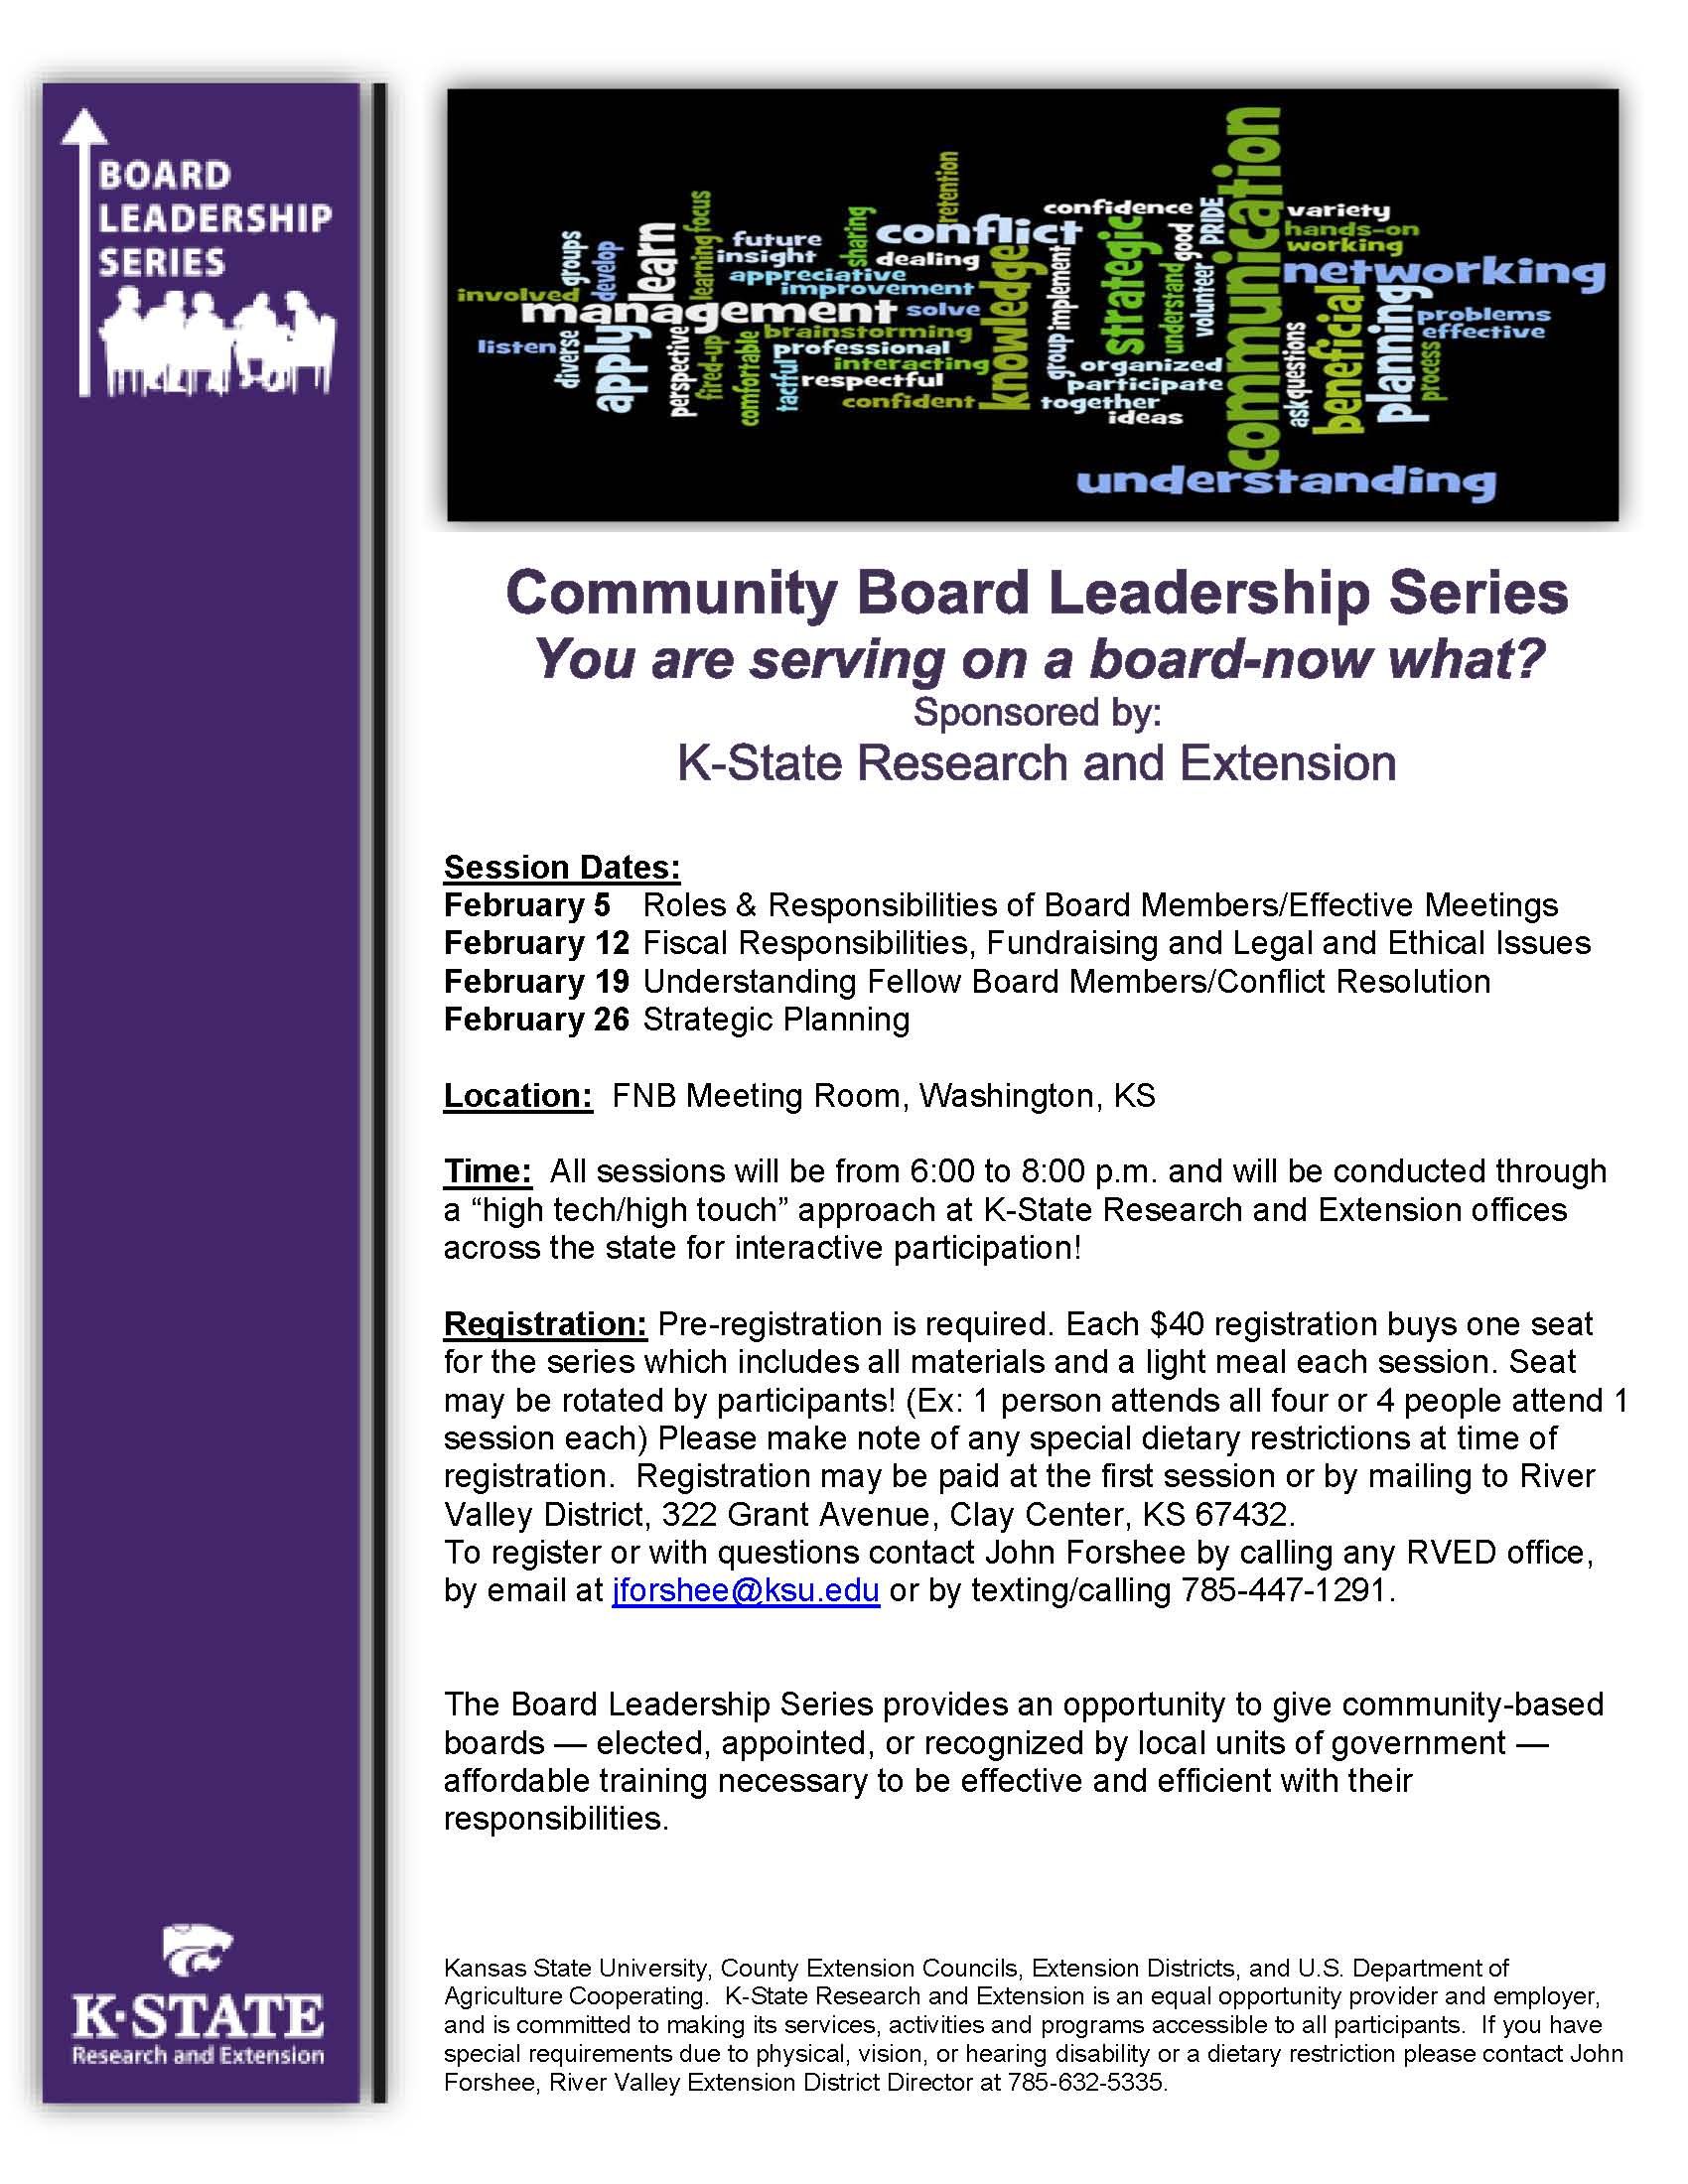 2019 Board Leadership Series Flyer